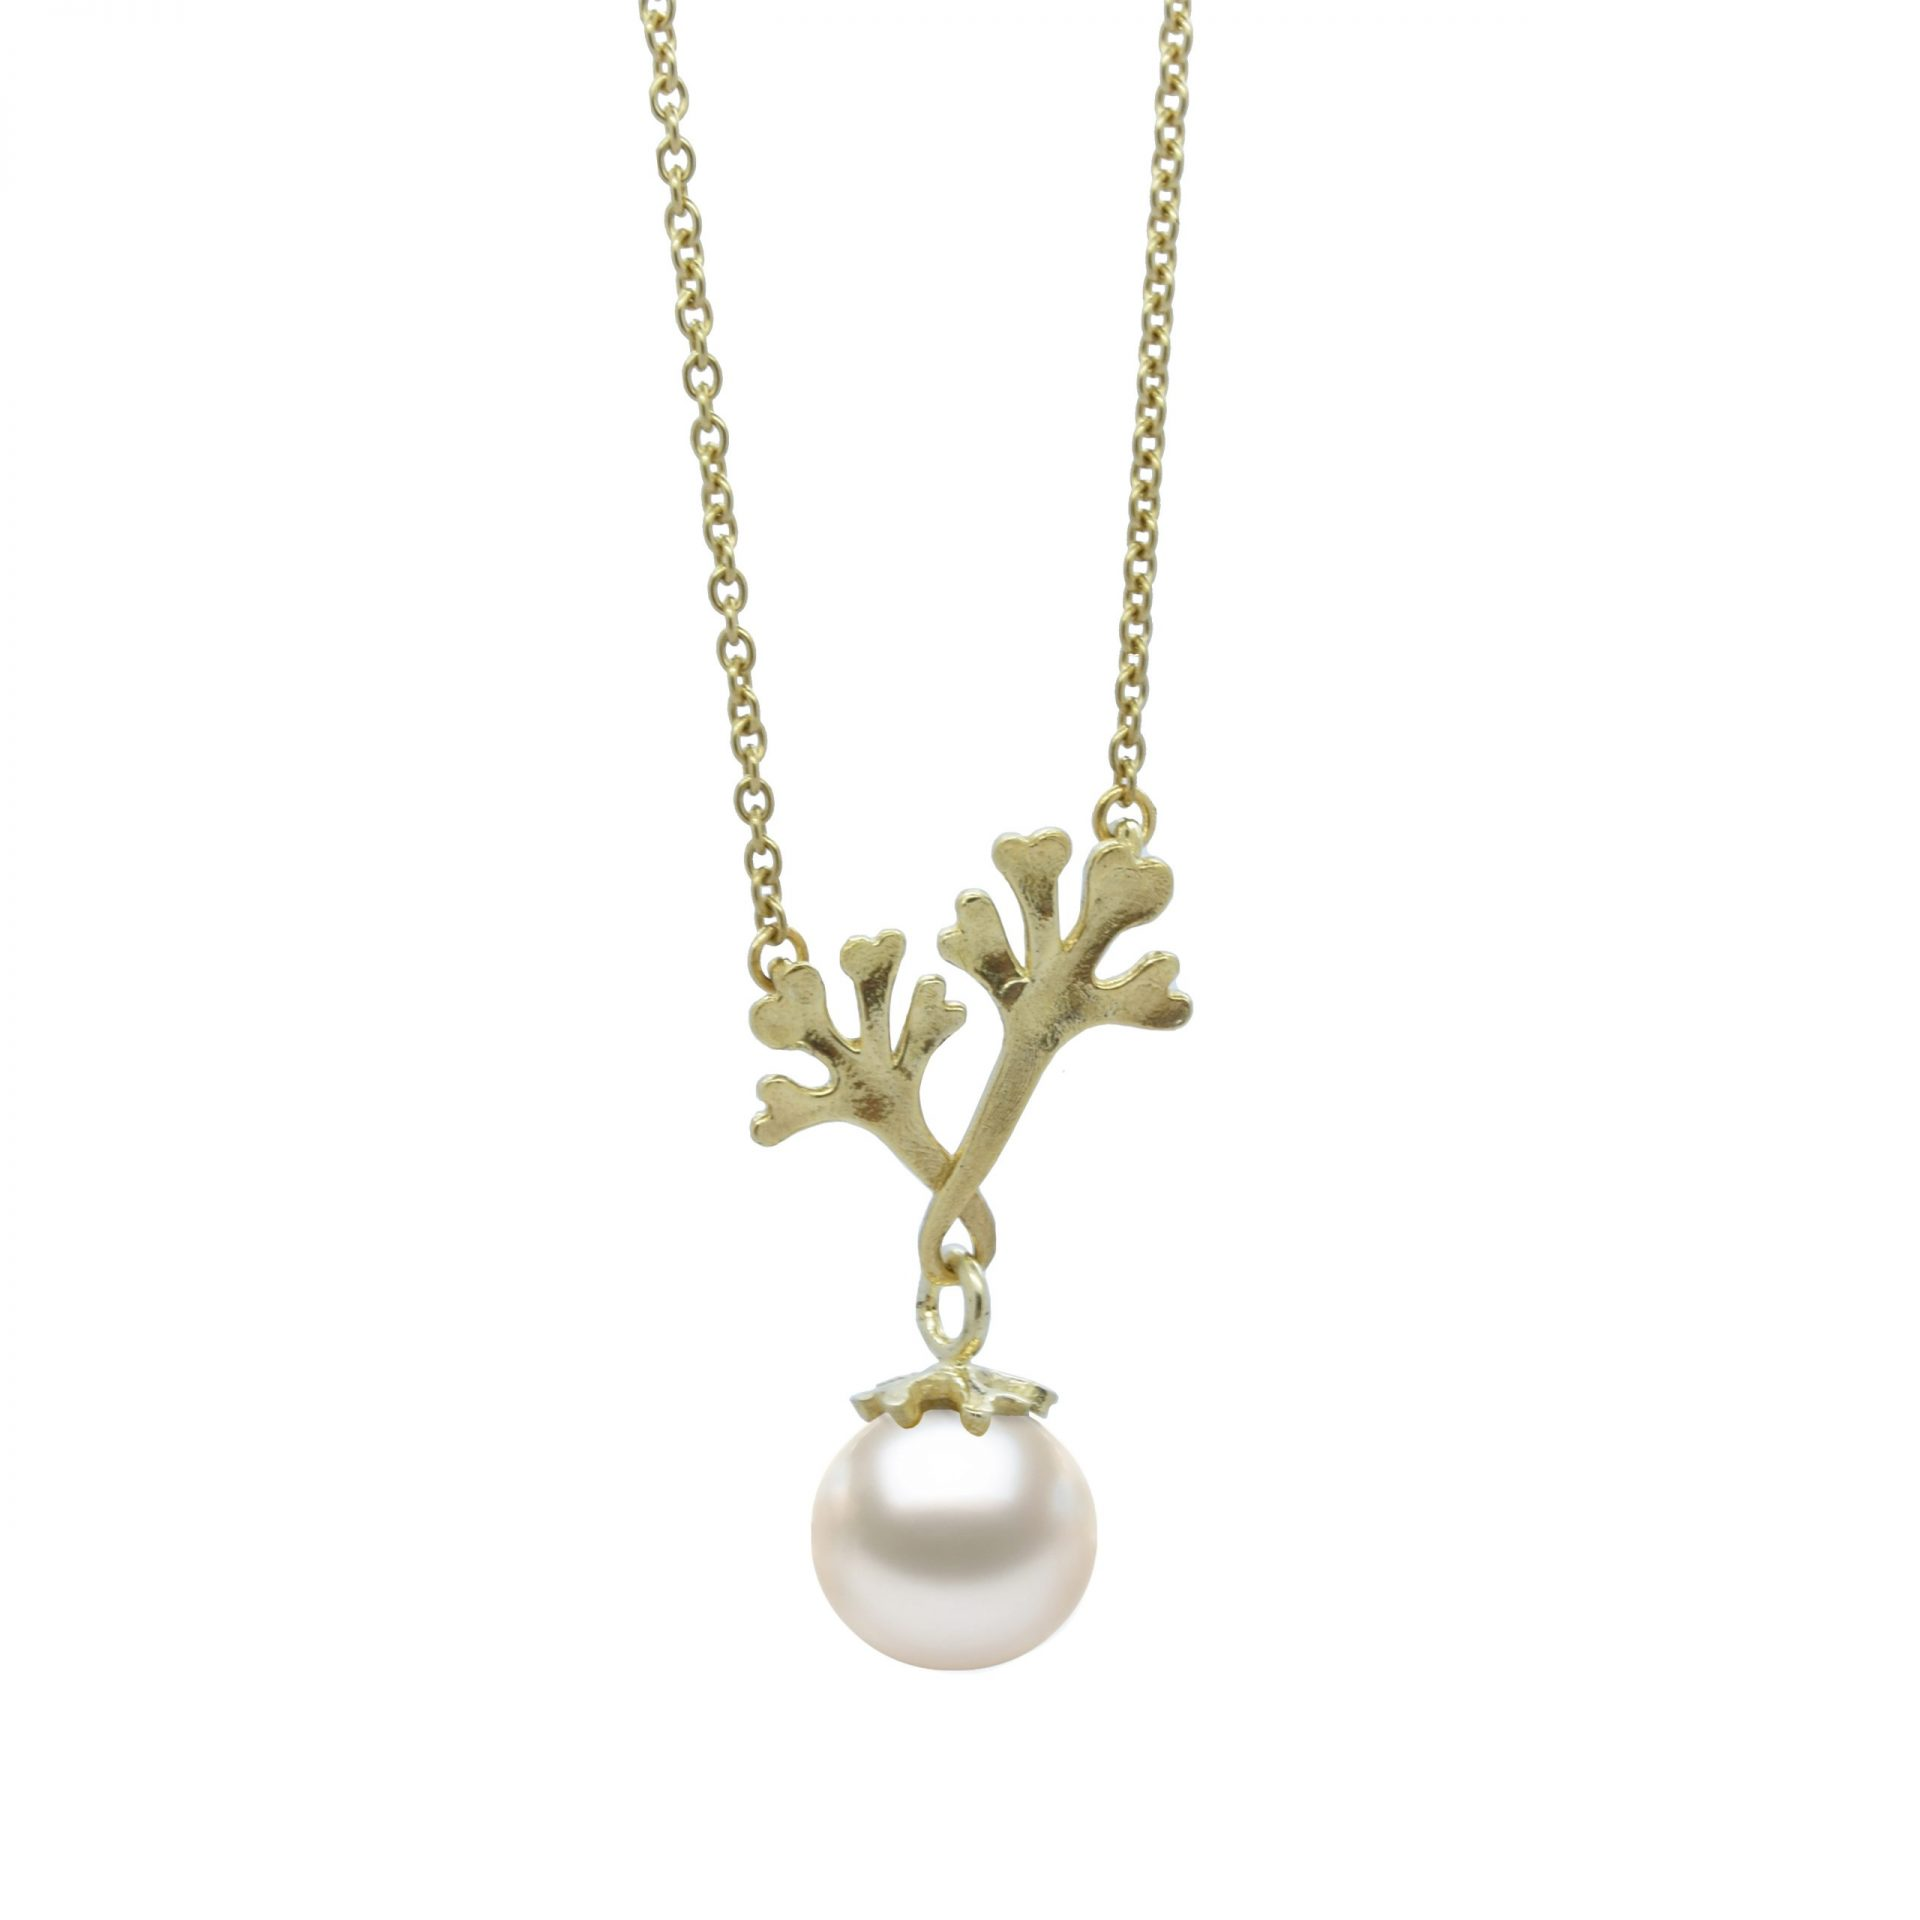 Chondrus Seaweed Pendant with South Sea Pearl by Jewellery designer Serena Fox